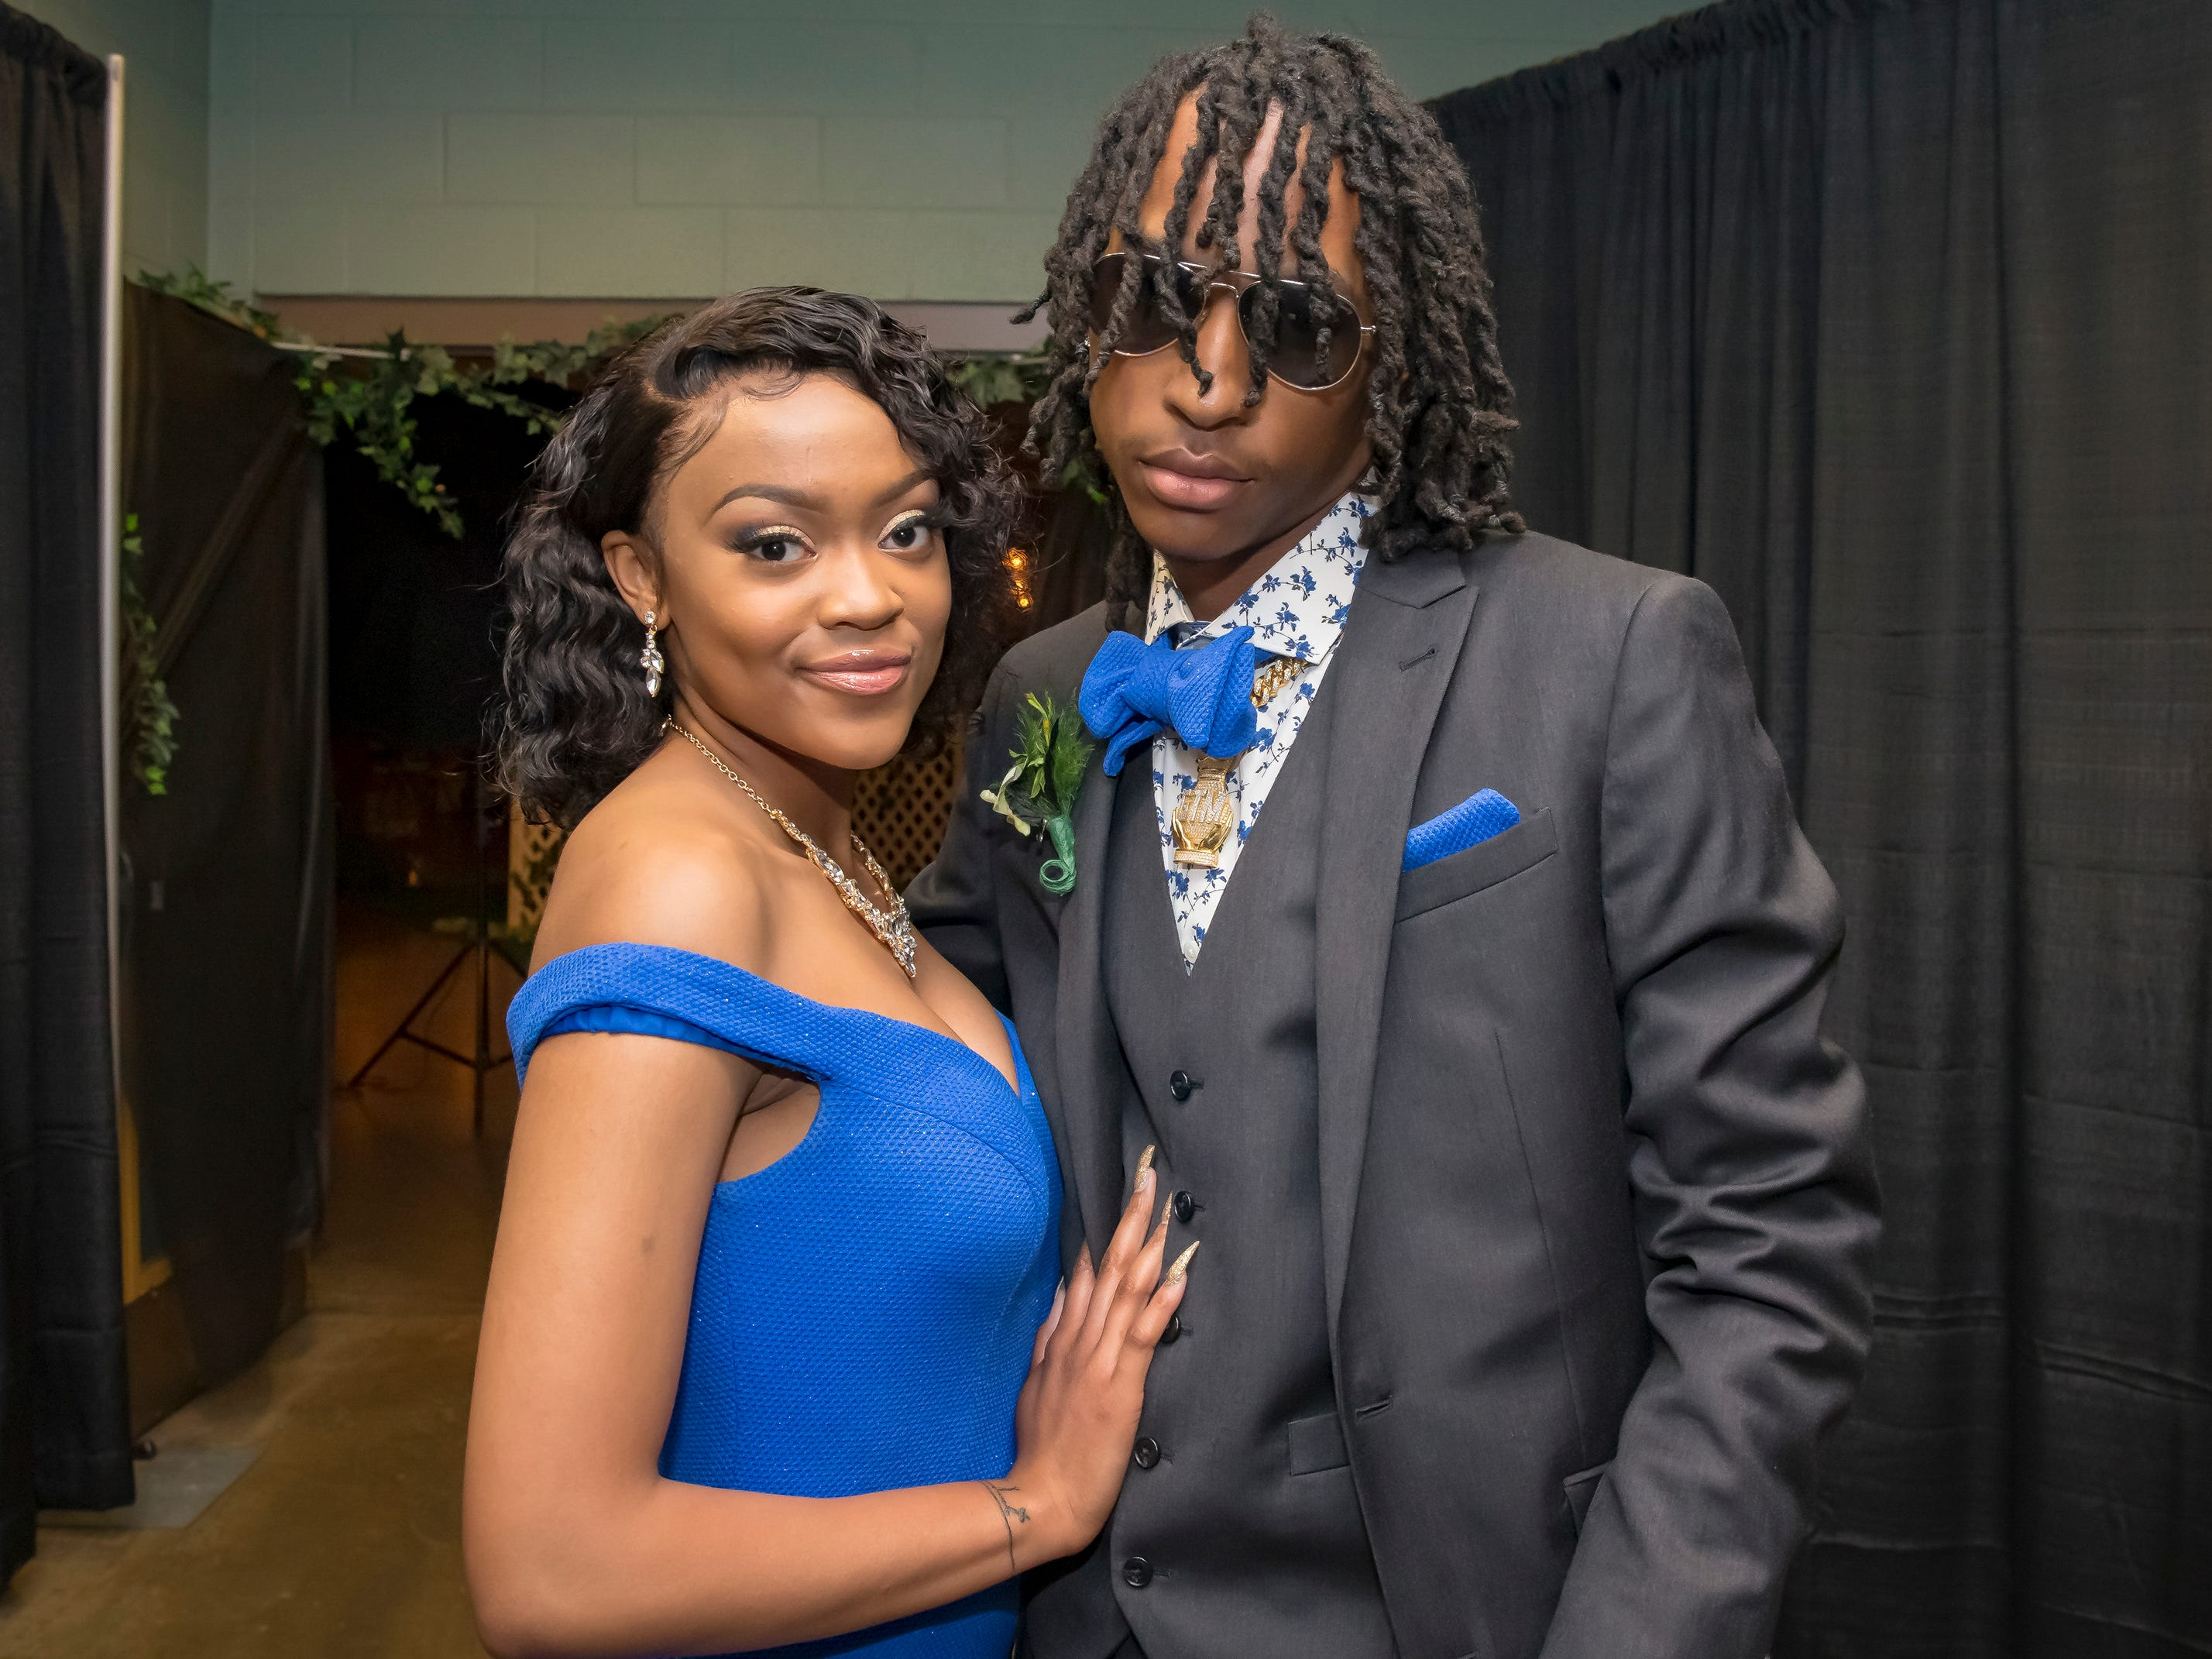 Quintana Lytle and Kaleb Mitchell arrive at the Oakland High School prom held at Lane Agri-Park Saturday, April, 27, 2019 in Murfreesboro.